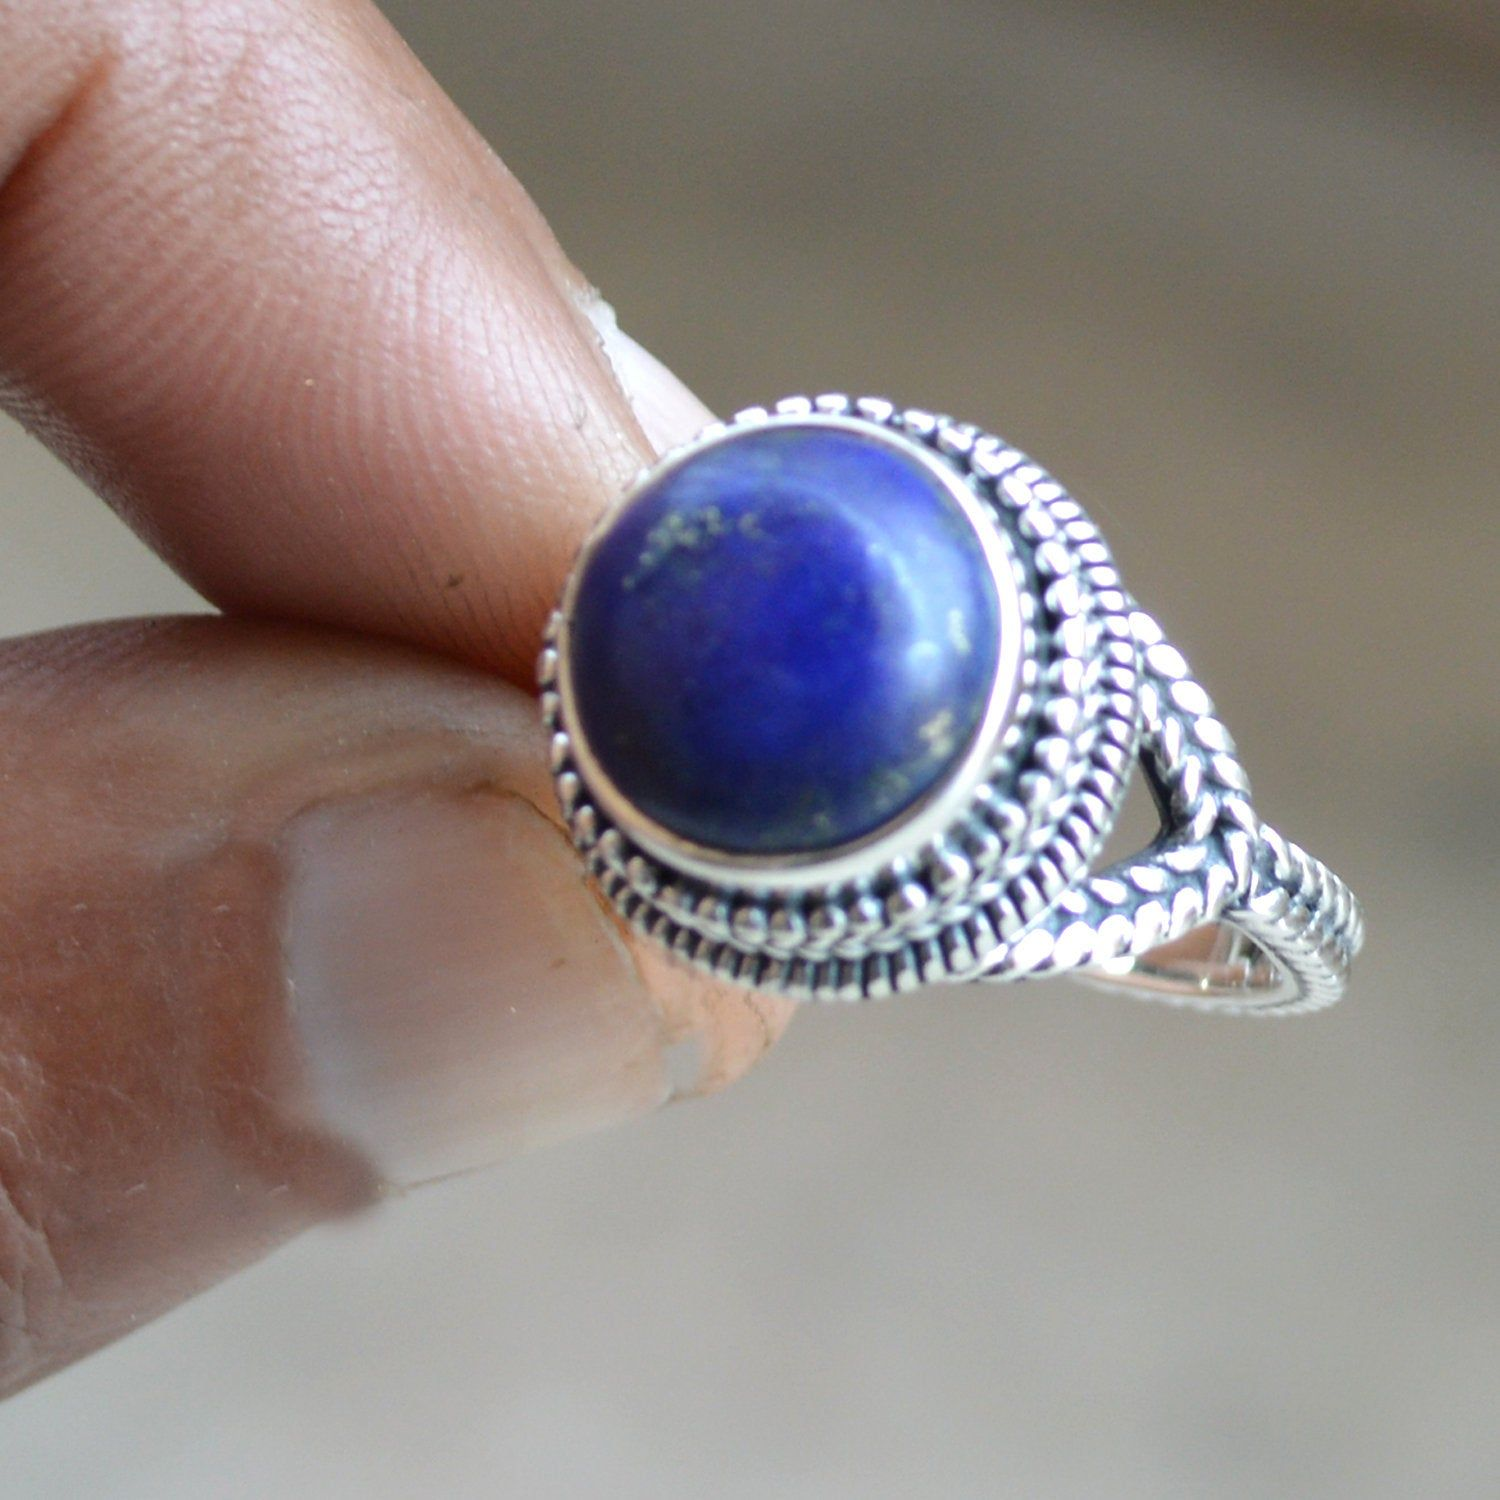 Lapis Lazuli Ring 92.5/% solid sterling silver ring handmade ring sterling silver ring